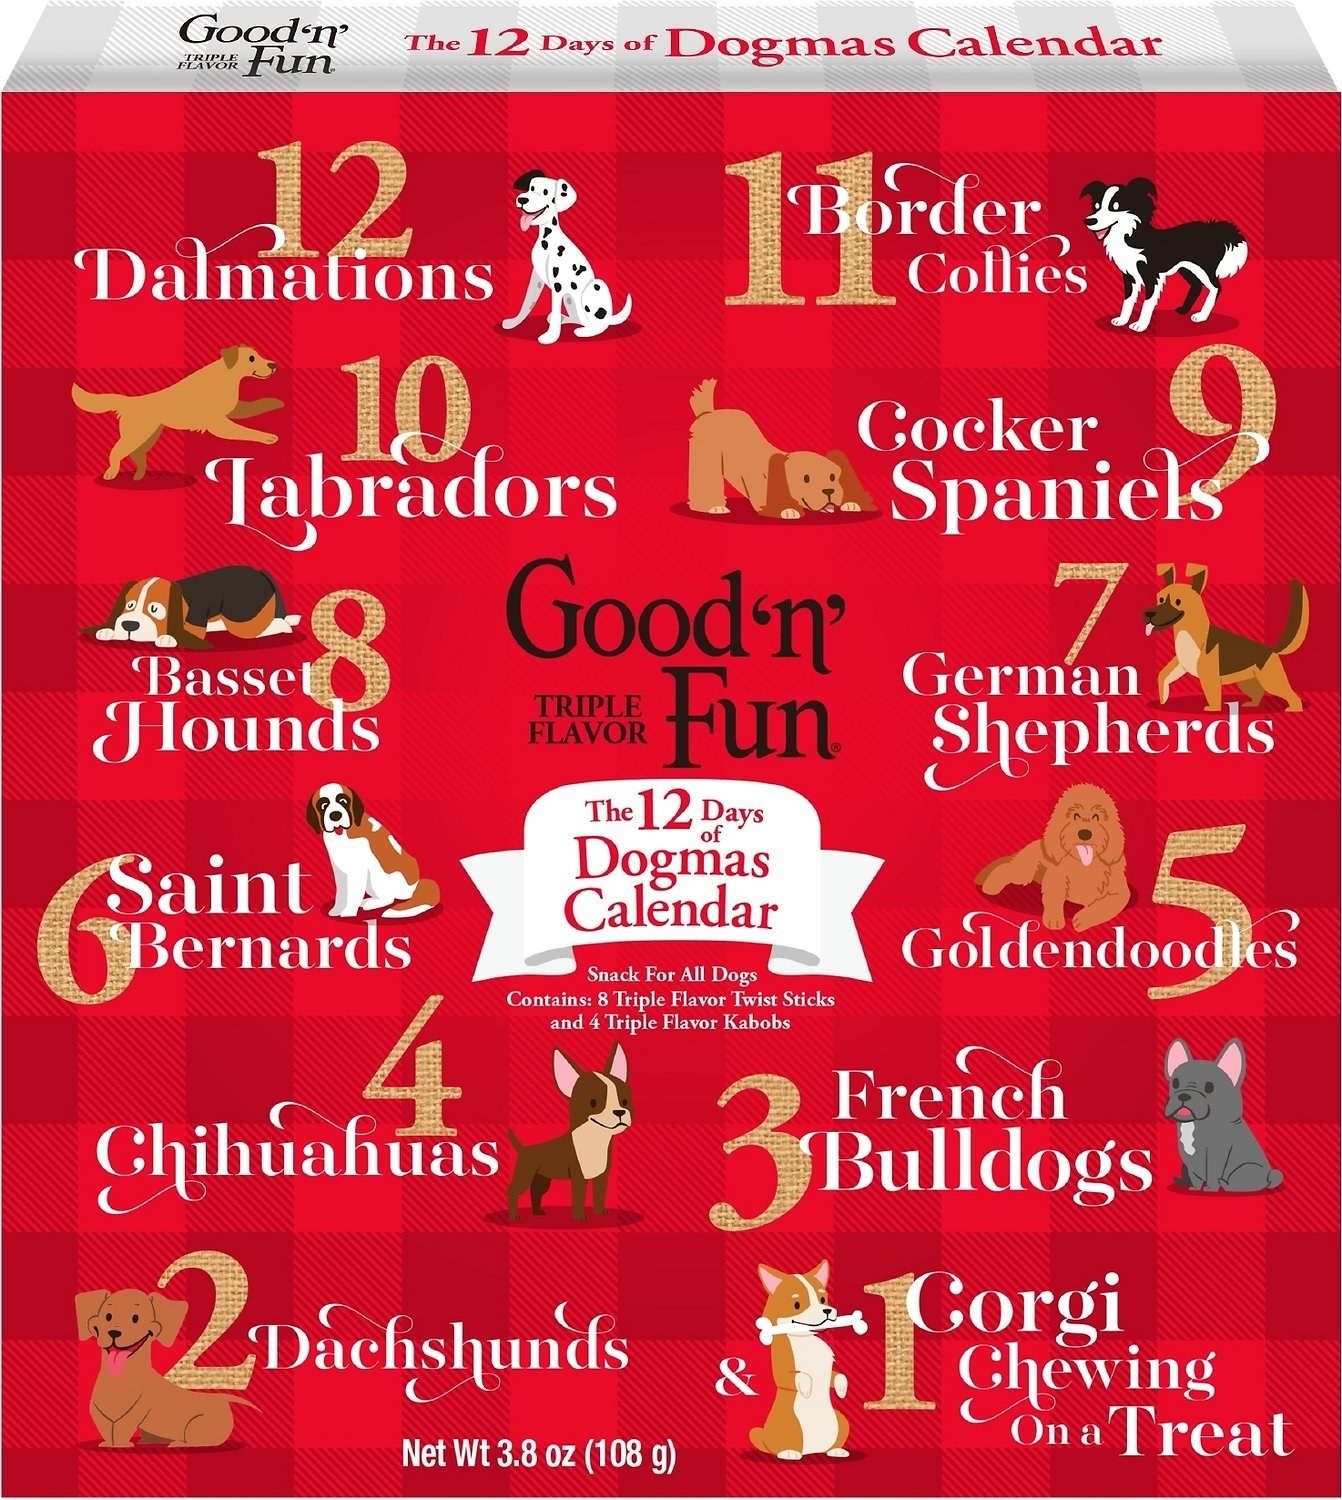 a red advent calendar with a countdown to christmas featuring different dog breeds